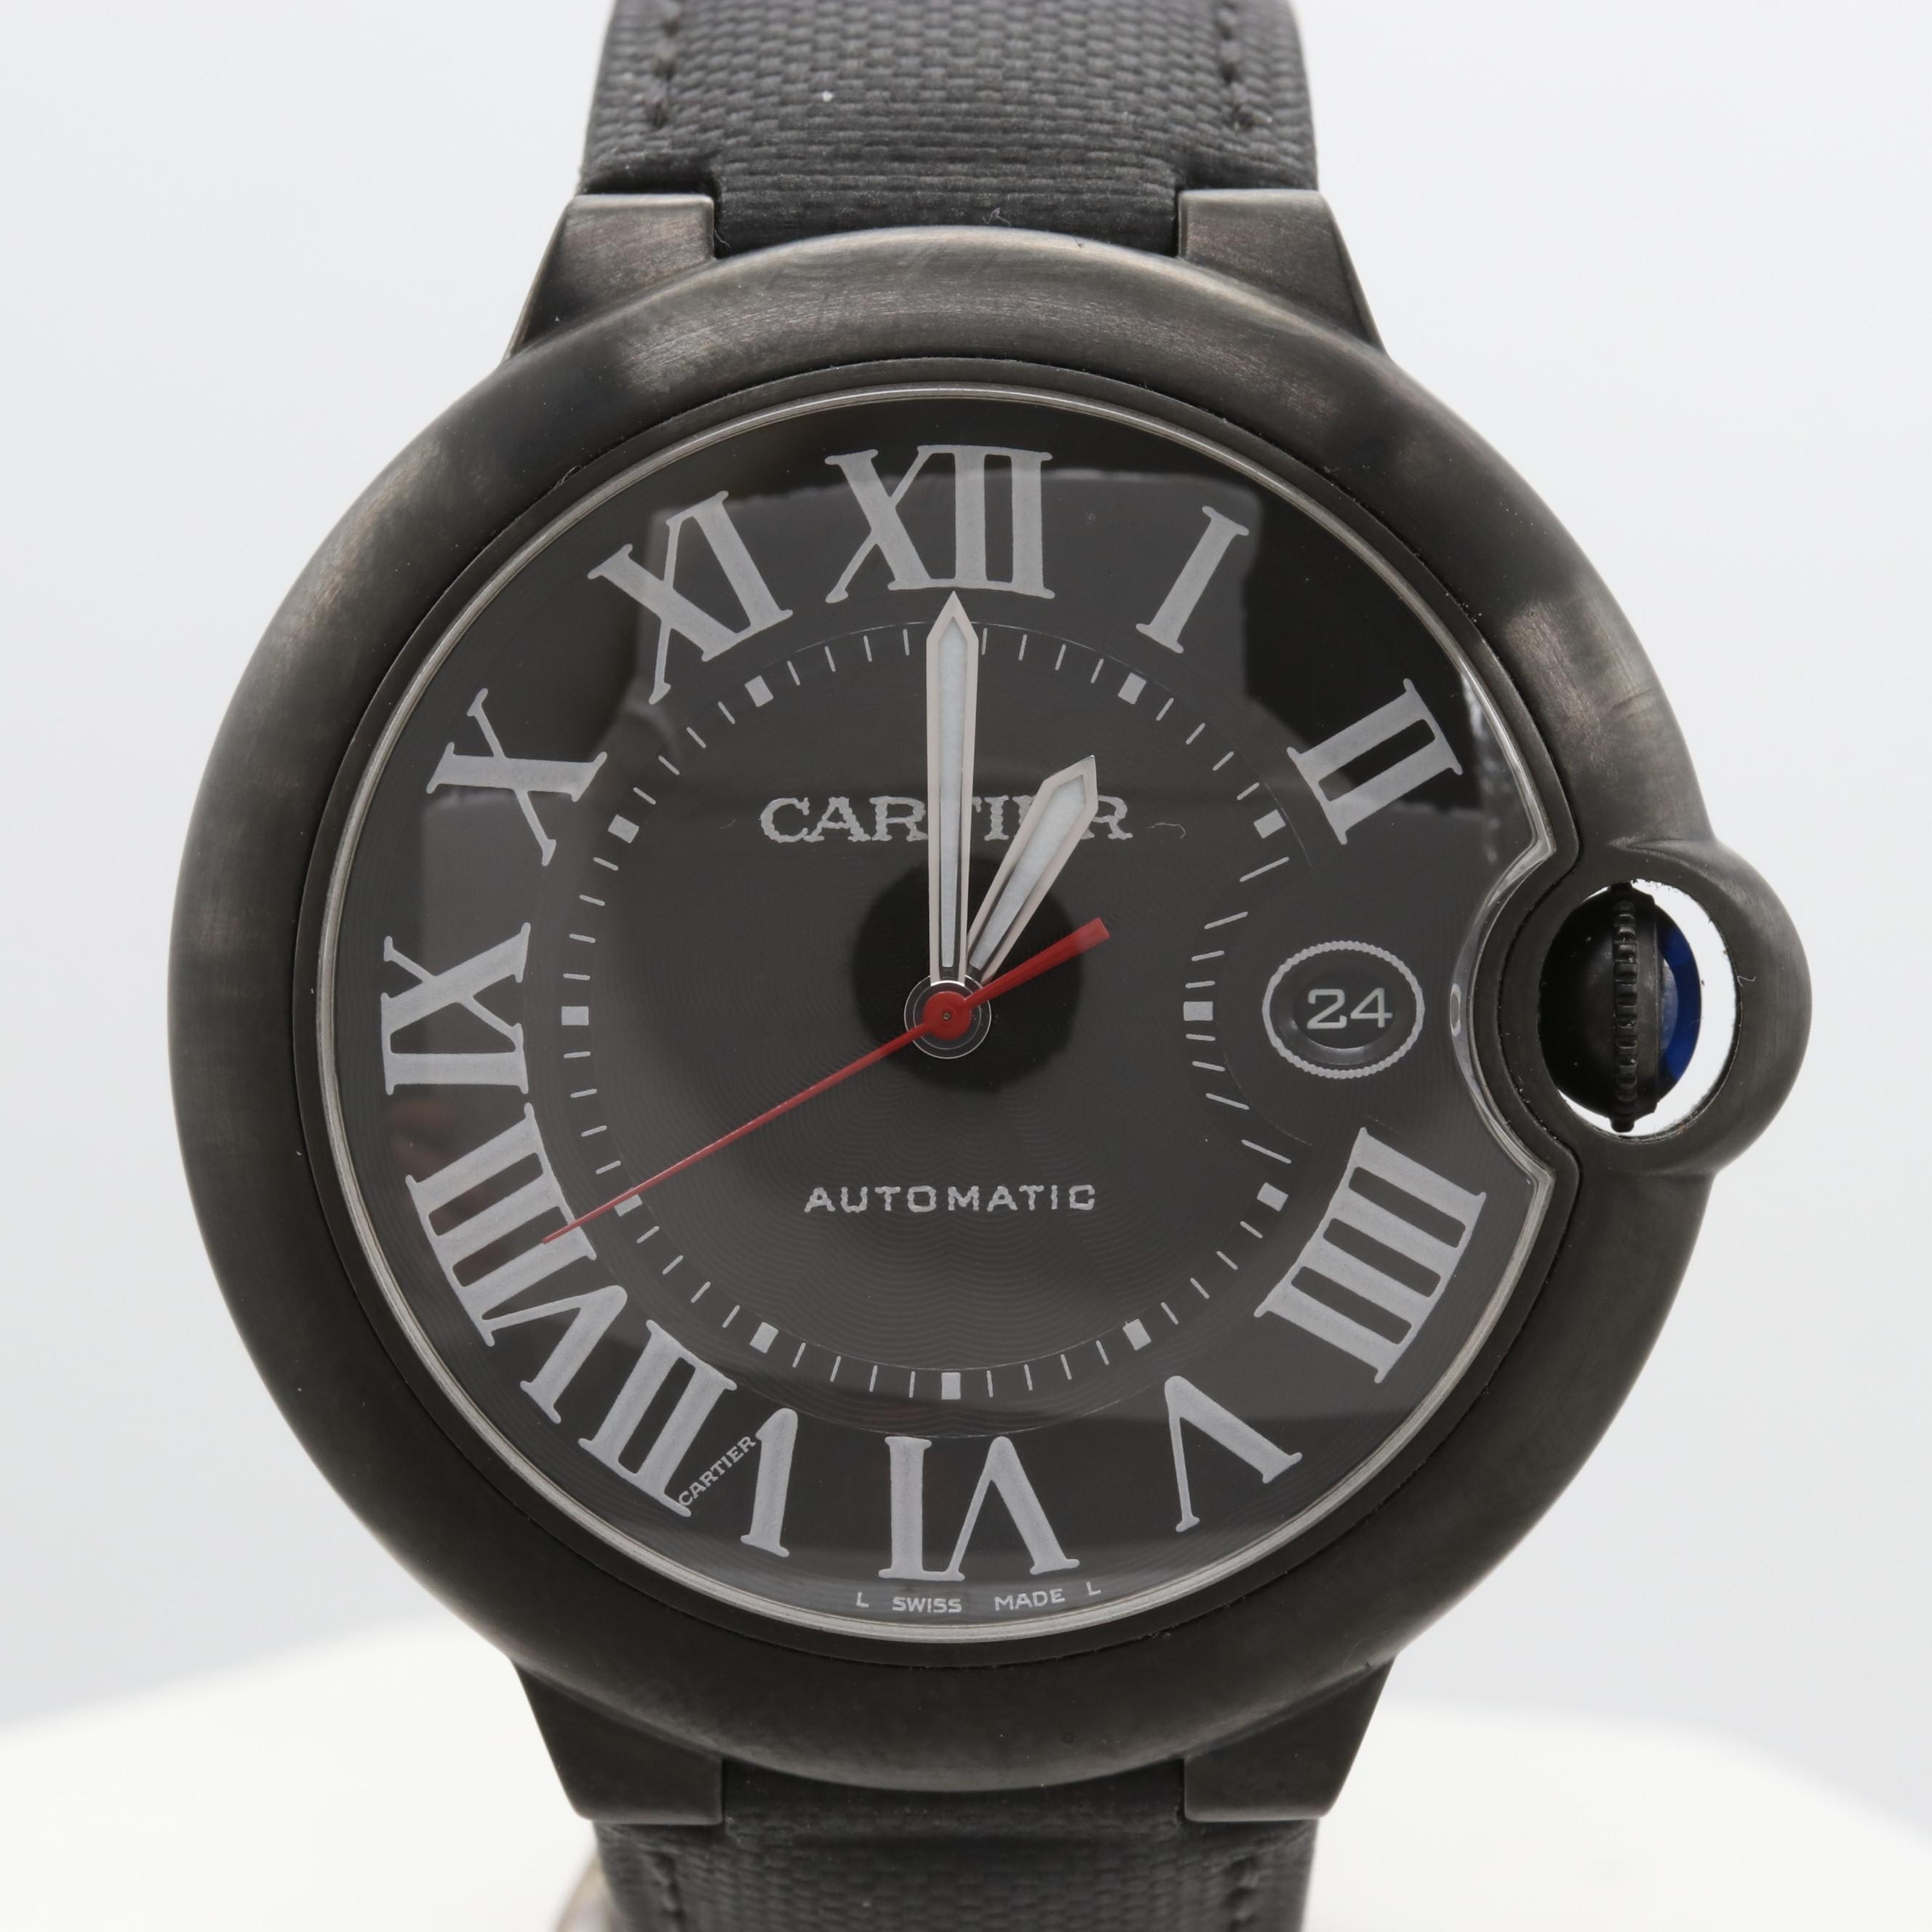 Cartier Ballon Bleu Black DLC Coated Stainless Steel  Wristwatch